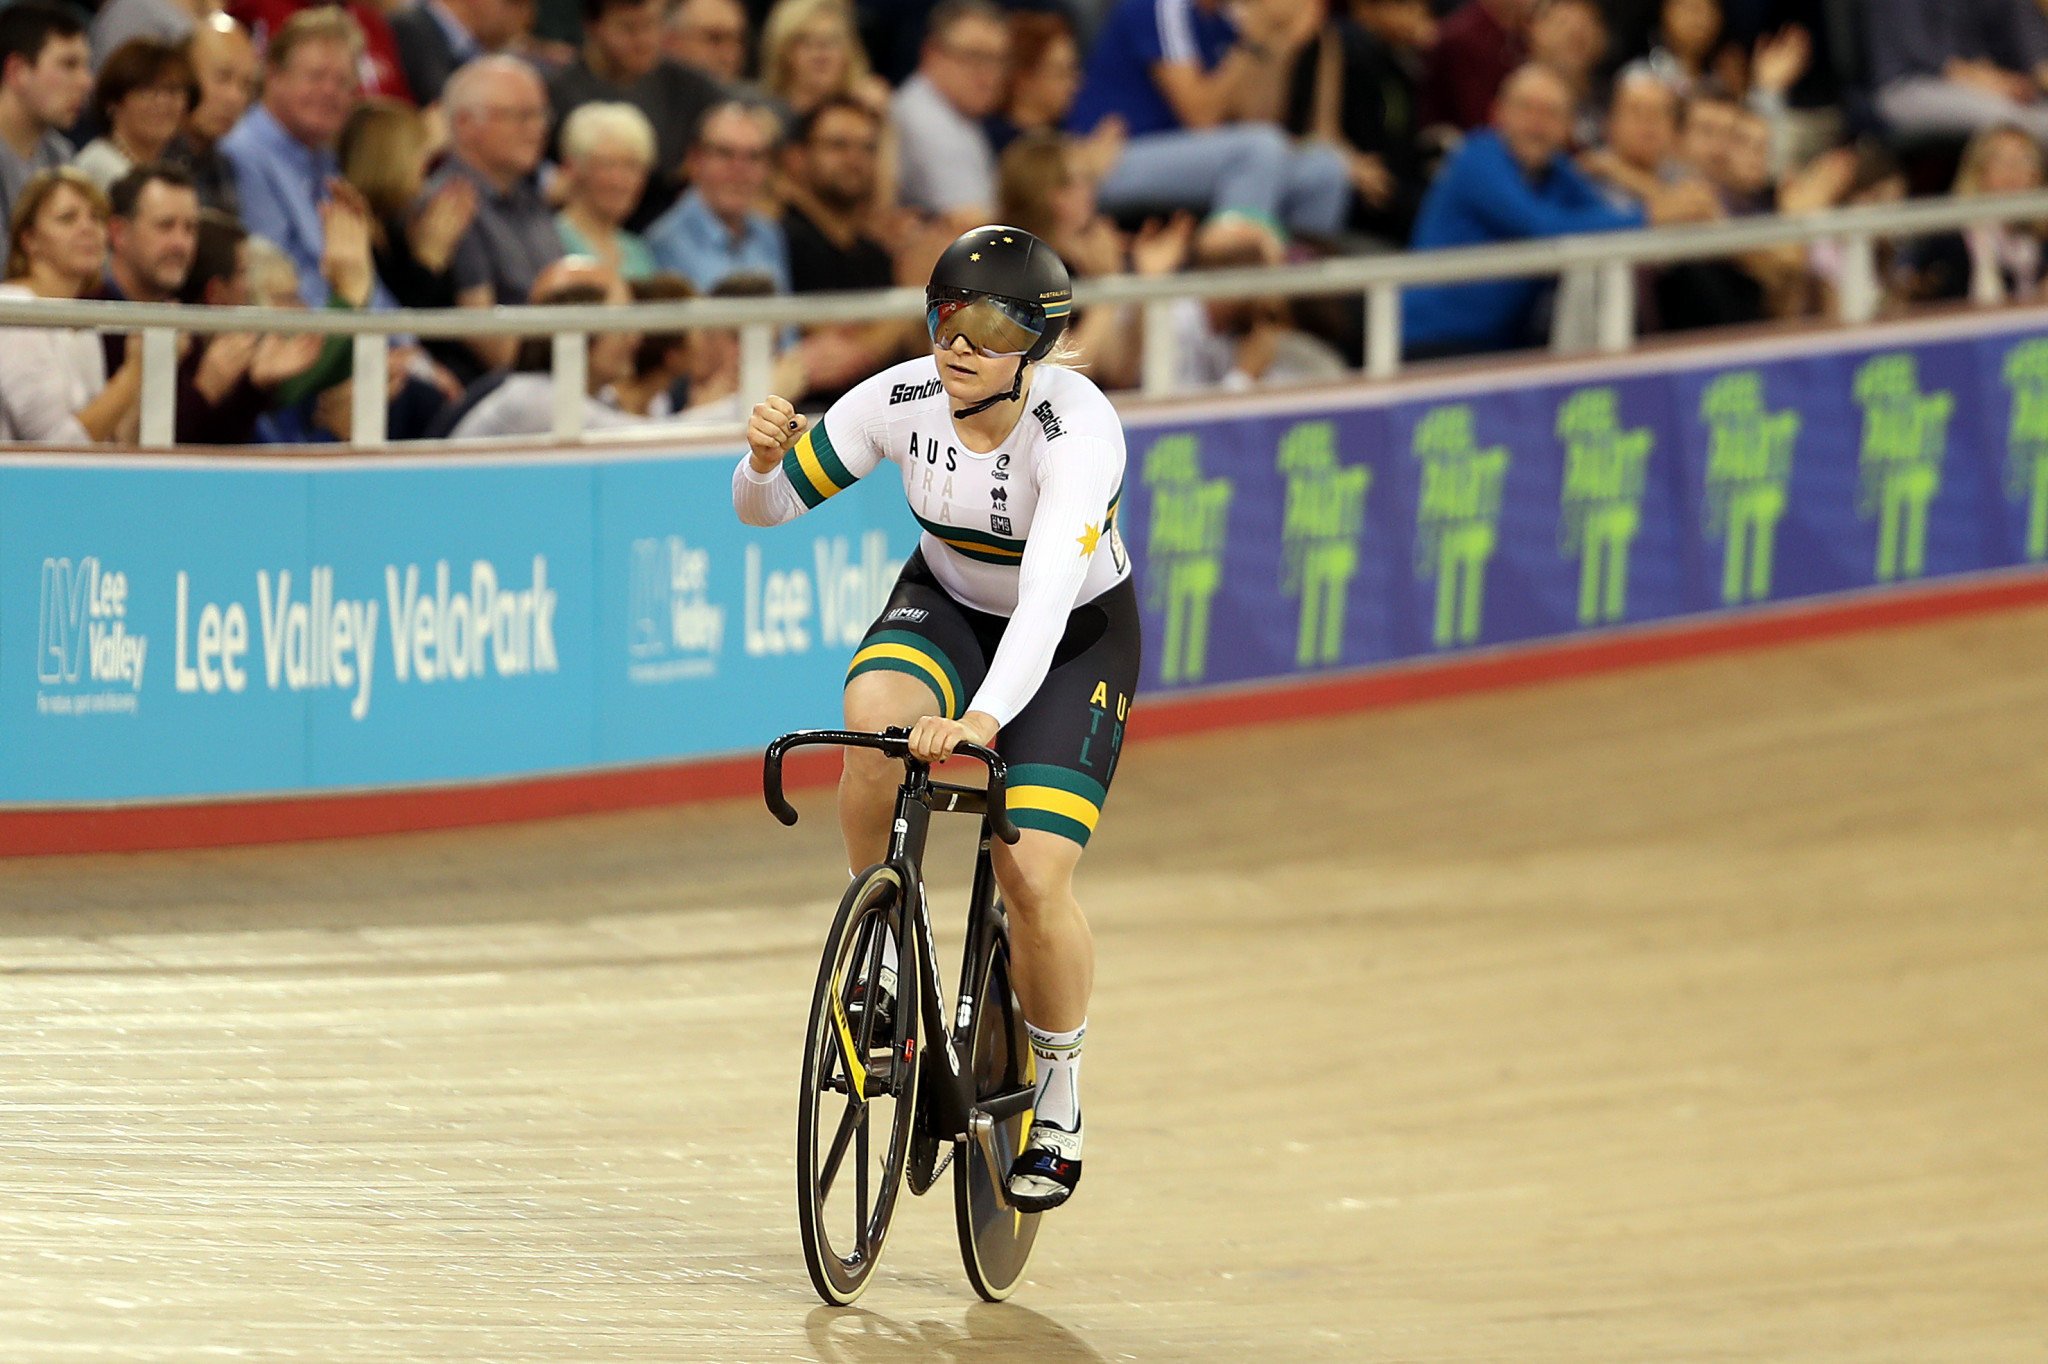 Morton wins women's sprint event at UCI Track World Cup in London